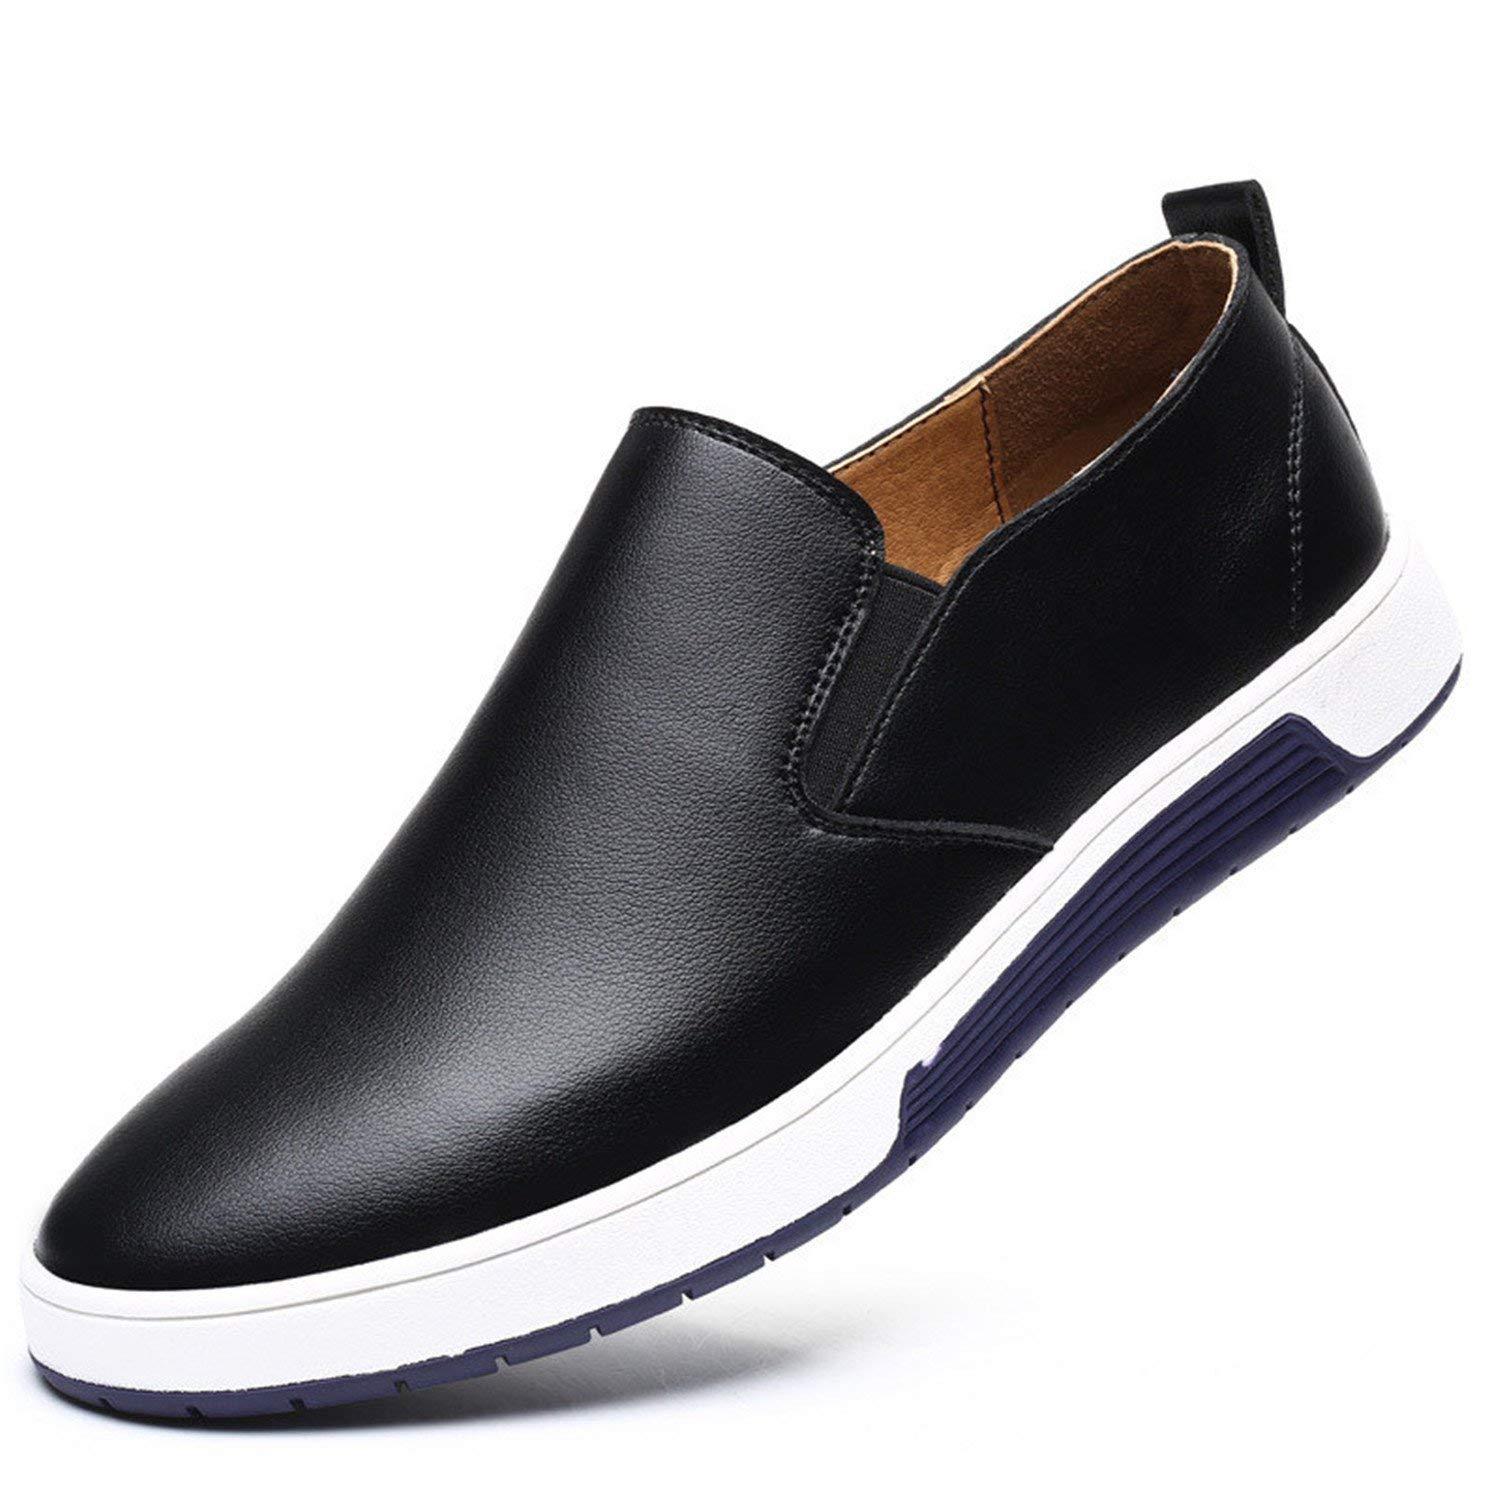 Orcan Bluce Big Size 37-48 Autumn Men Leather Loafers Slip on Casual Shoes Leisure